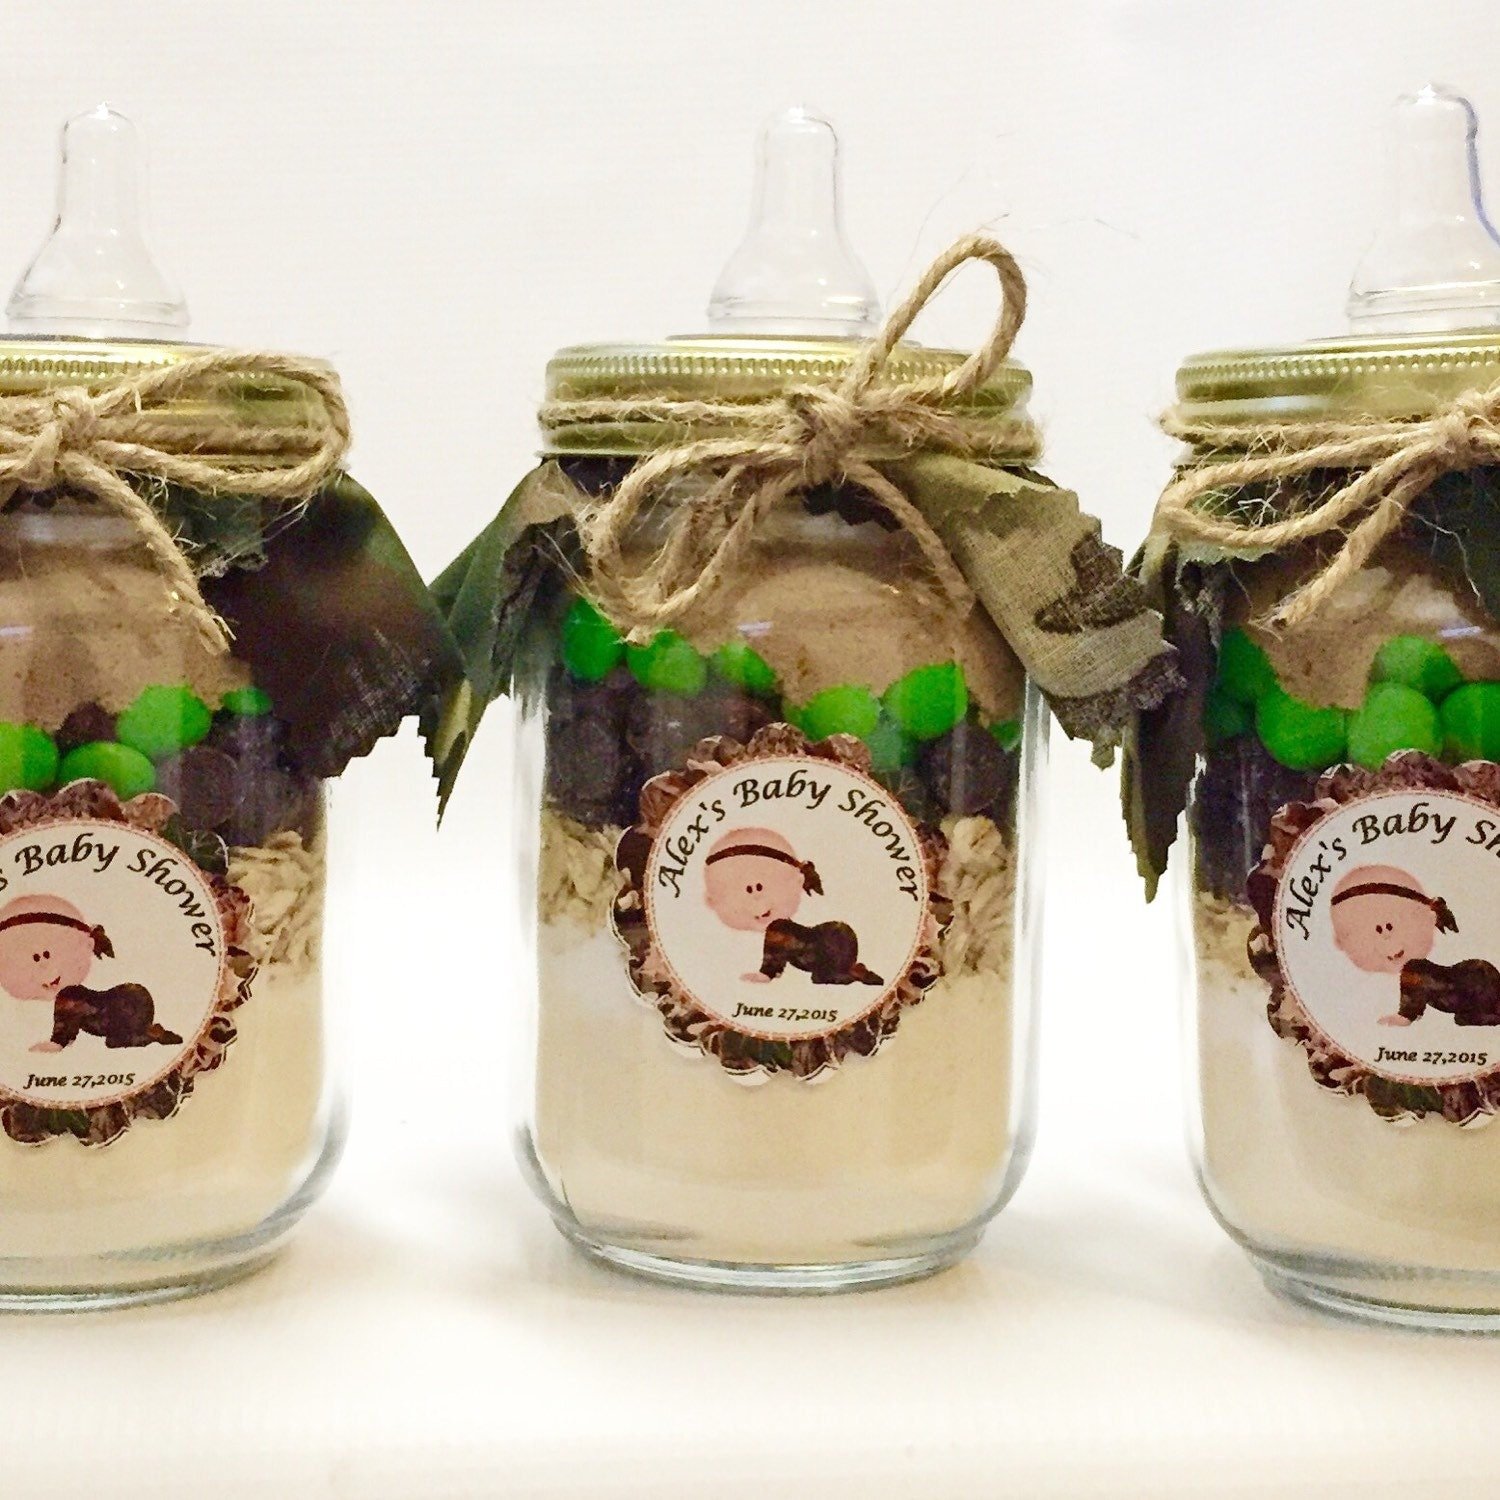 Camo Pint Size Mason Jar Gourmet Cookie Mixes Baby Shower